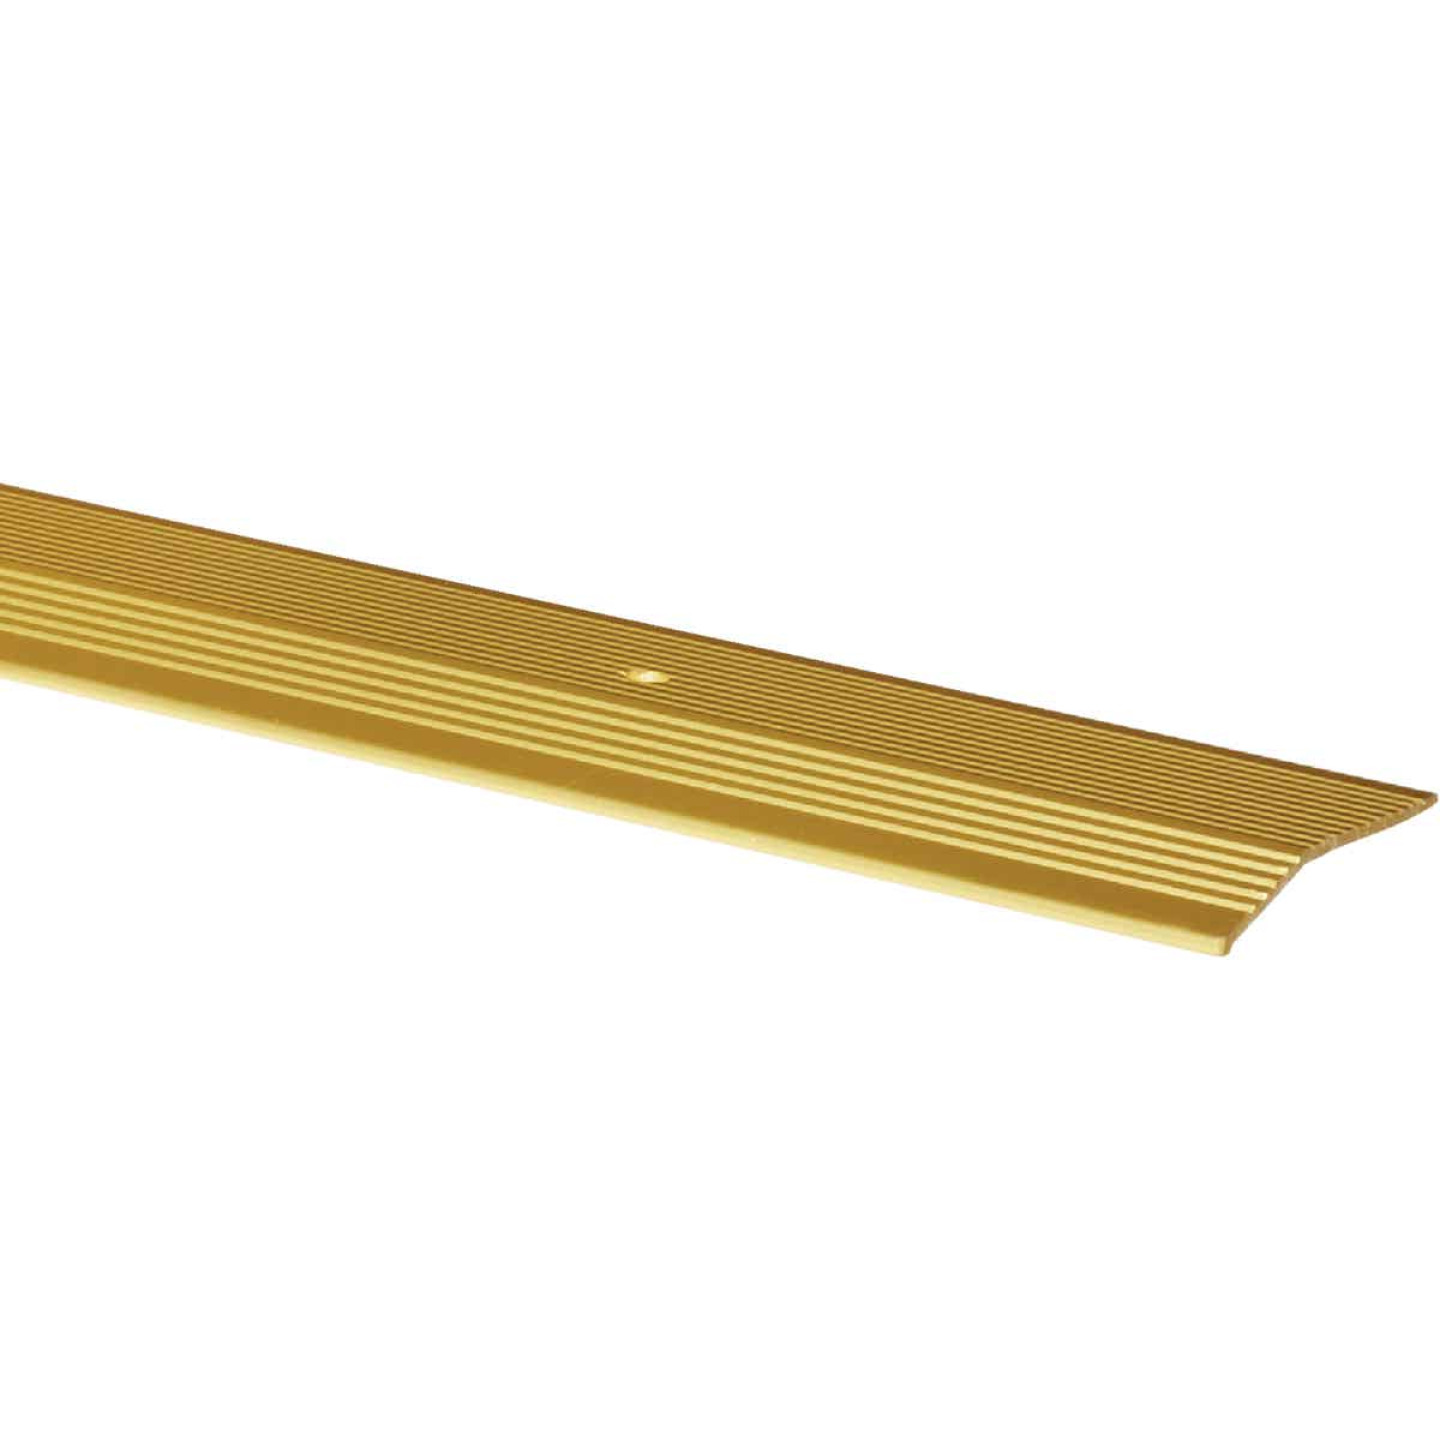 M-D Satin Brass Fluted 2 In. x 3 Ft. Aluminum Carpet Trim Bar, Extra Wide Image 1